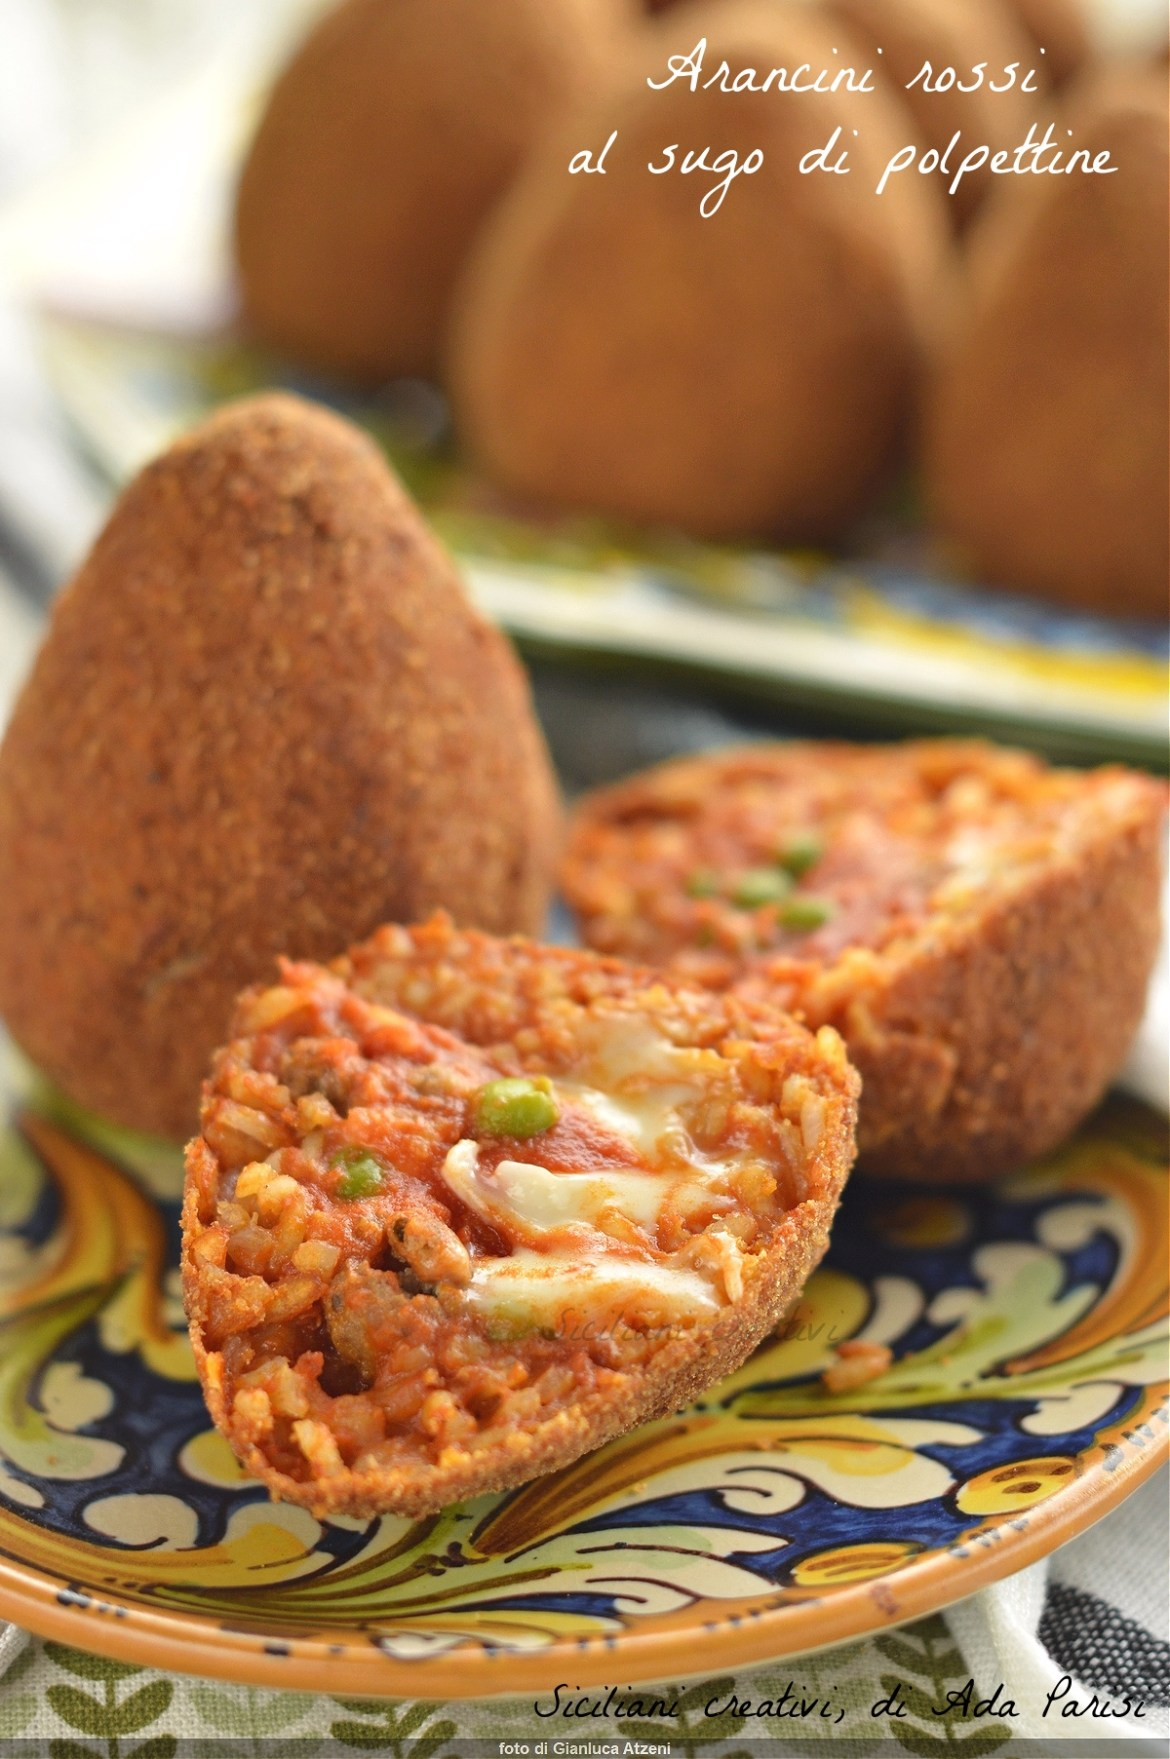 Rice arancini with meatball sauce